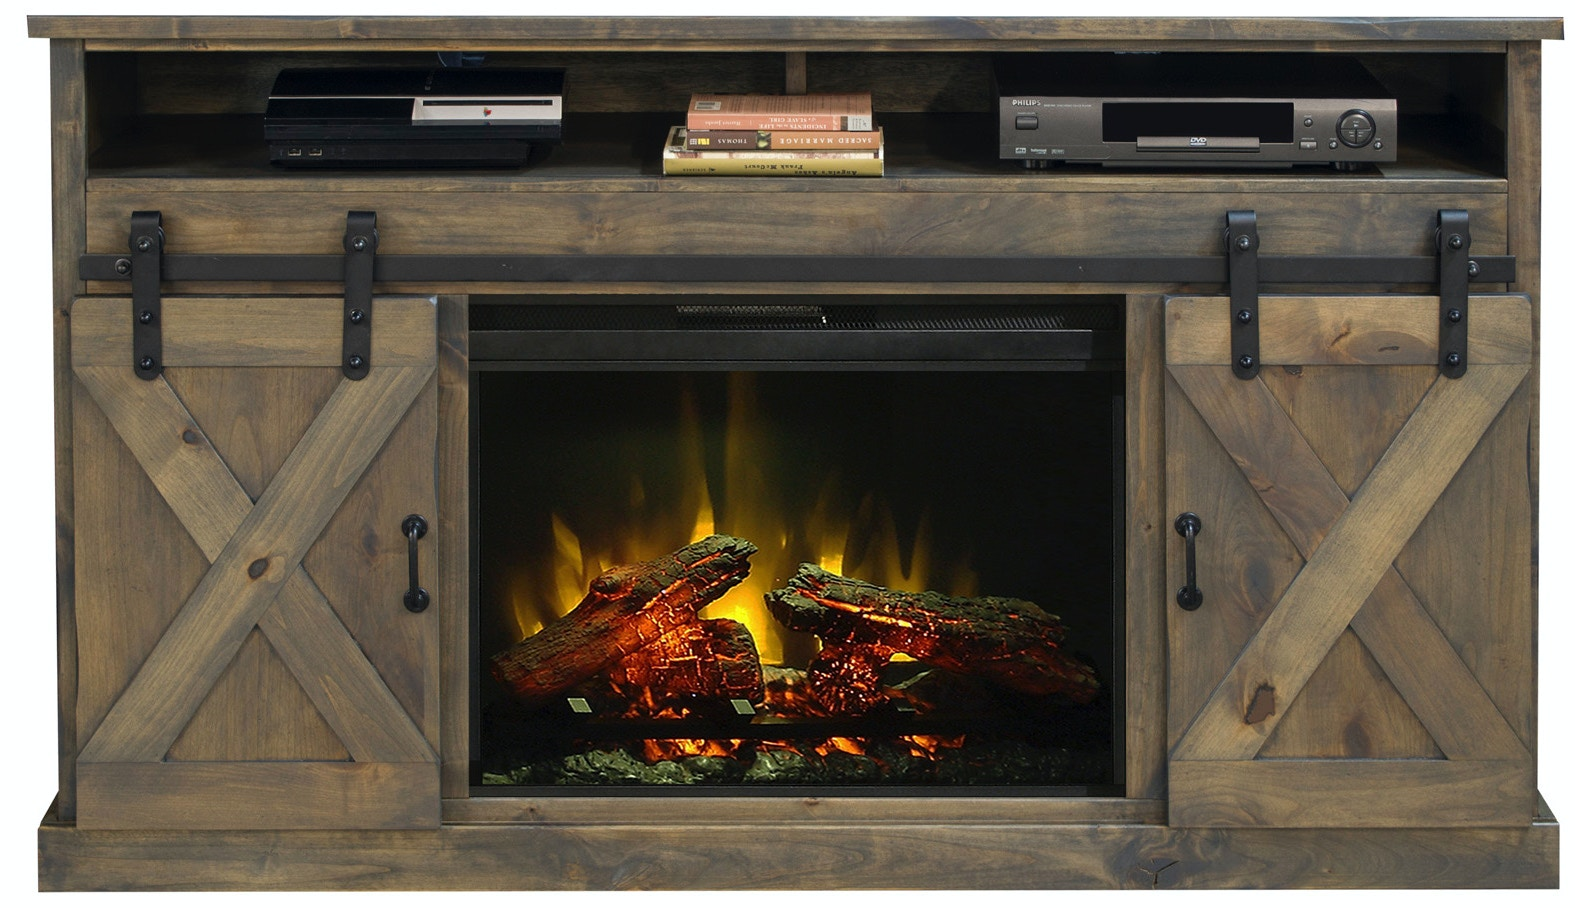 legends furniture home entertainment console tv 66 fireplace rh naturwood com console fireplace with built-in mini-fridge tv console with fireplace costco